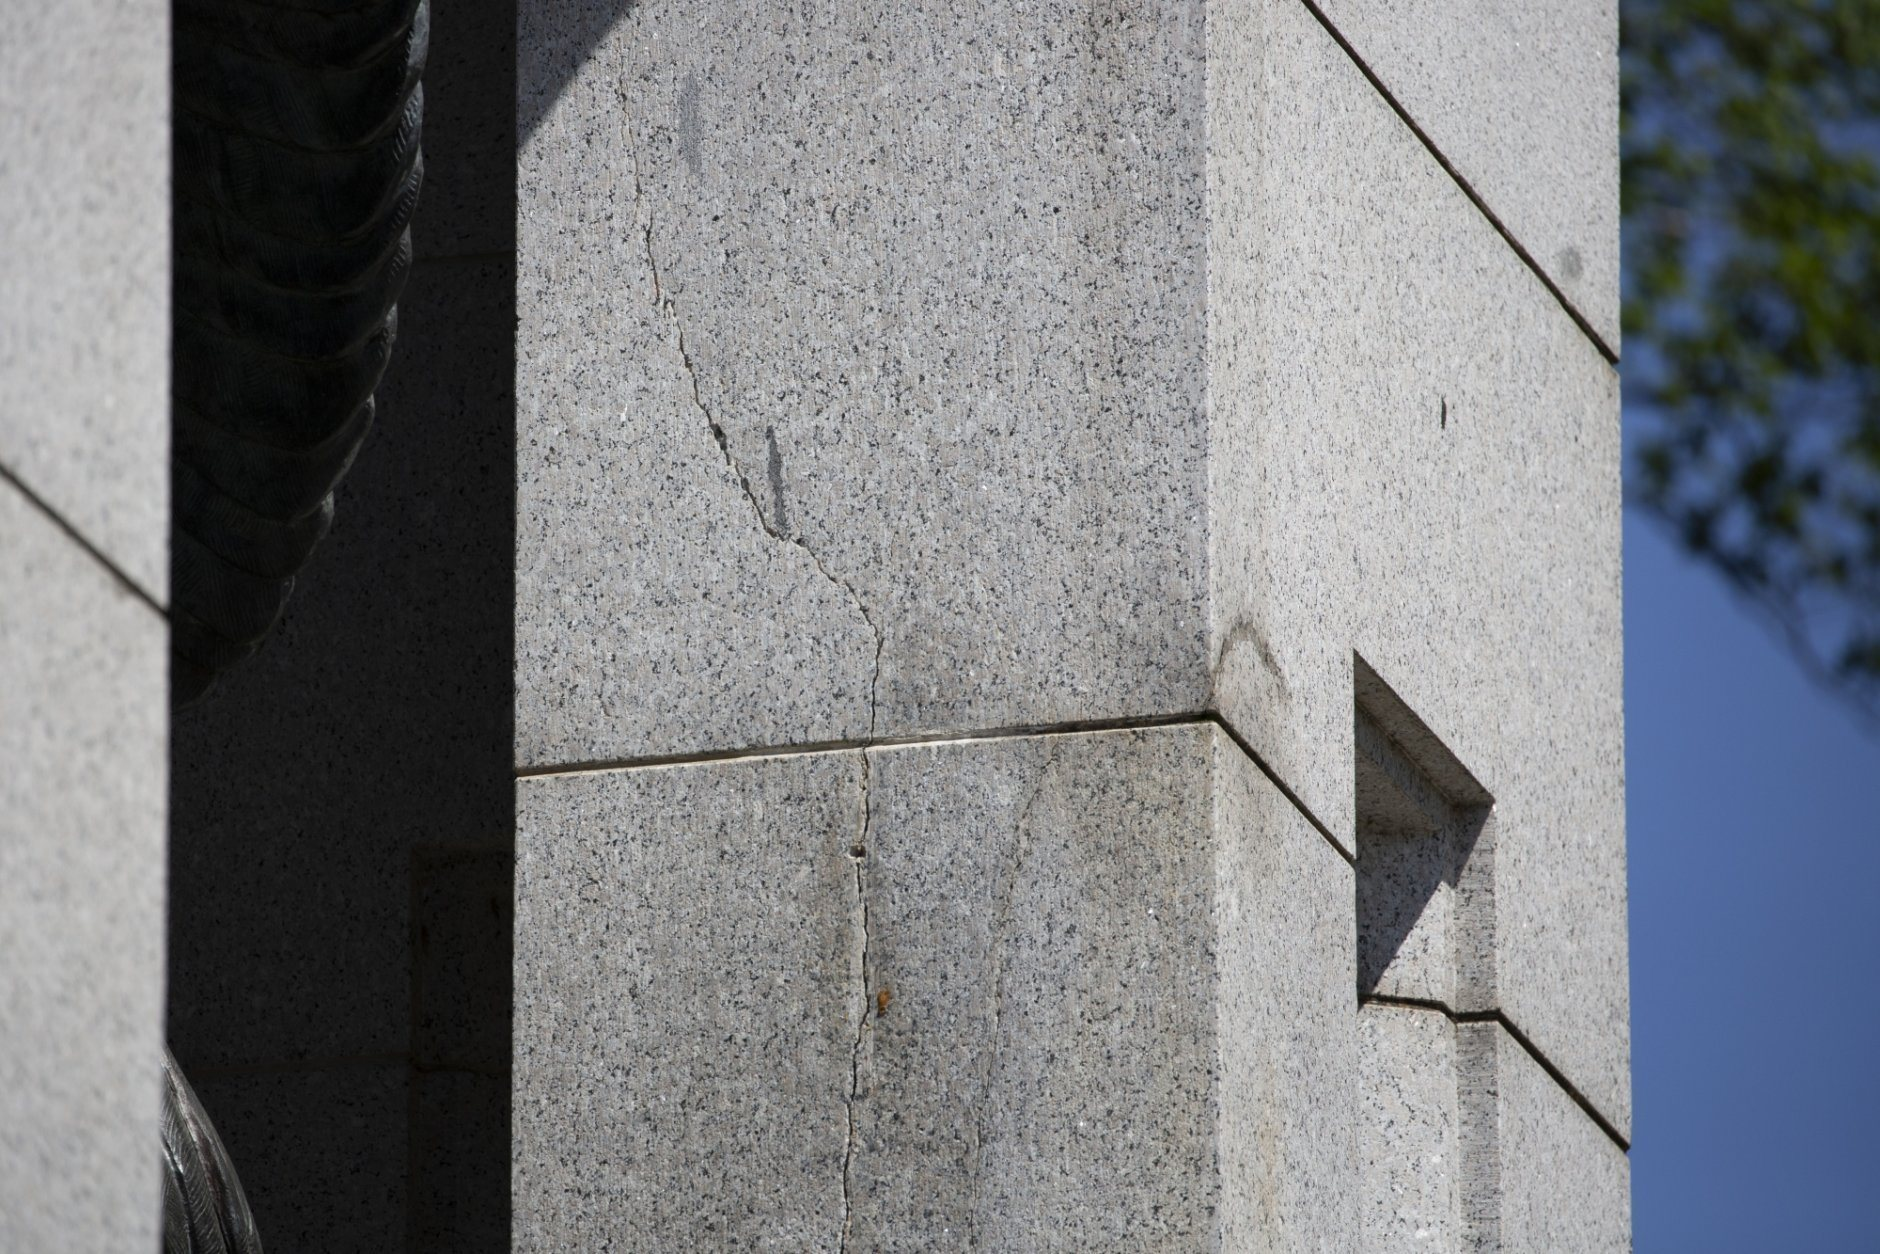 A crack is seen in Atlantic granite arch at the World War II Memorial on the National Mall in Washington, Friday, May 24, 2019. (AP Photo/Carolyn Kaster)